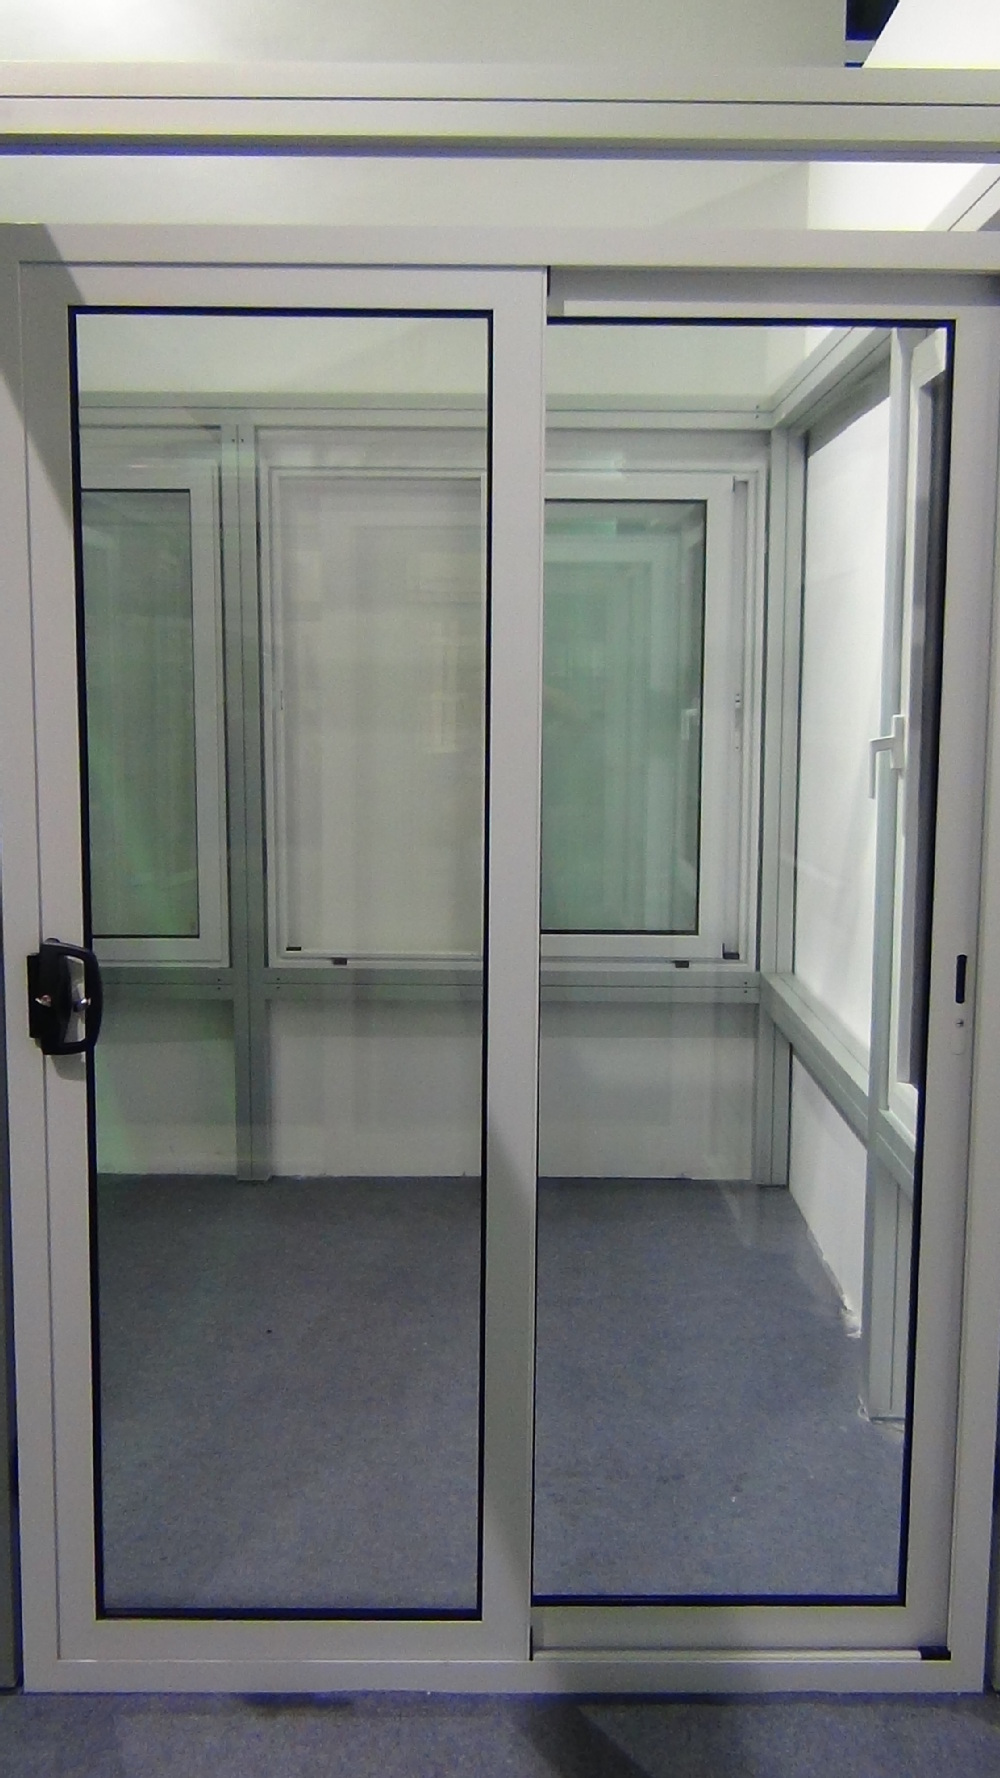 China manufacturers double glazed sliding glass door meet for Double pane sliding glass door